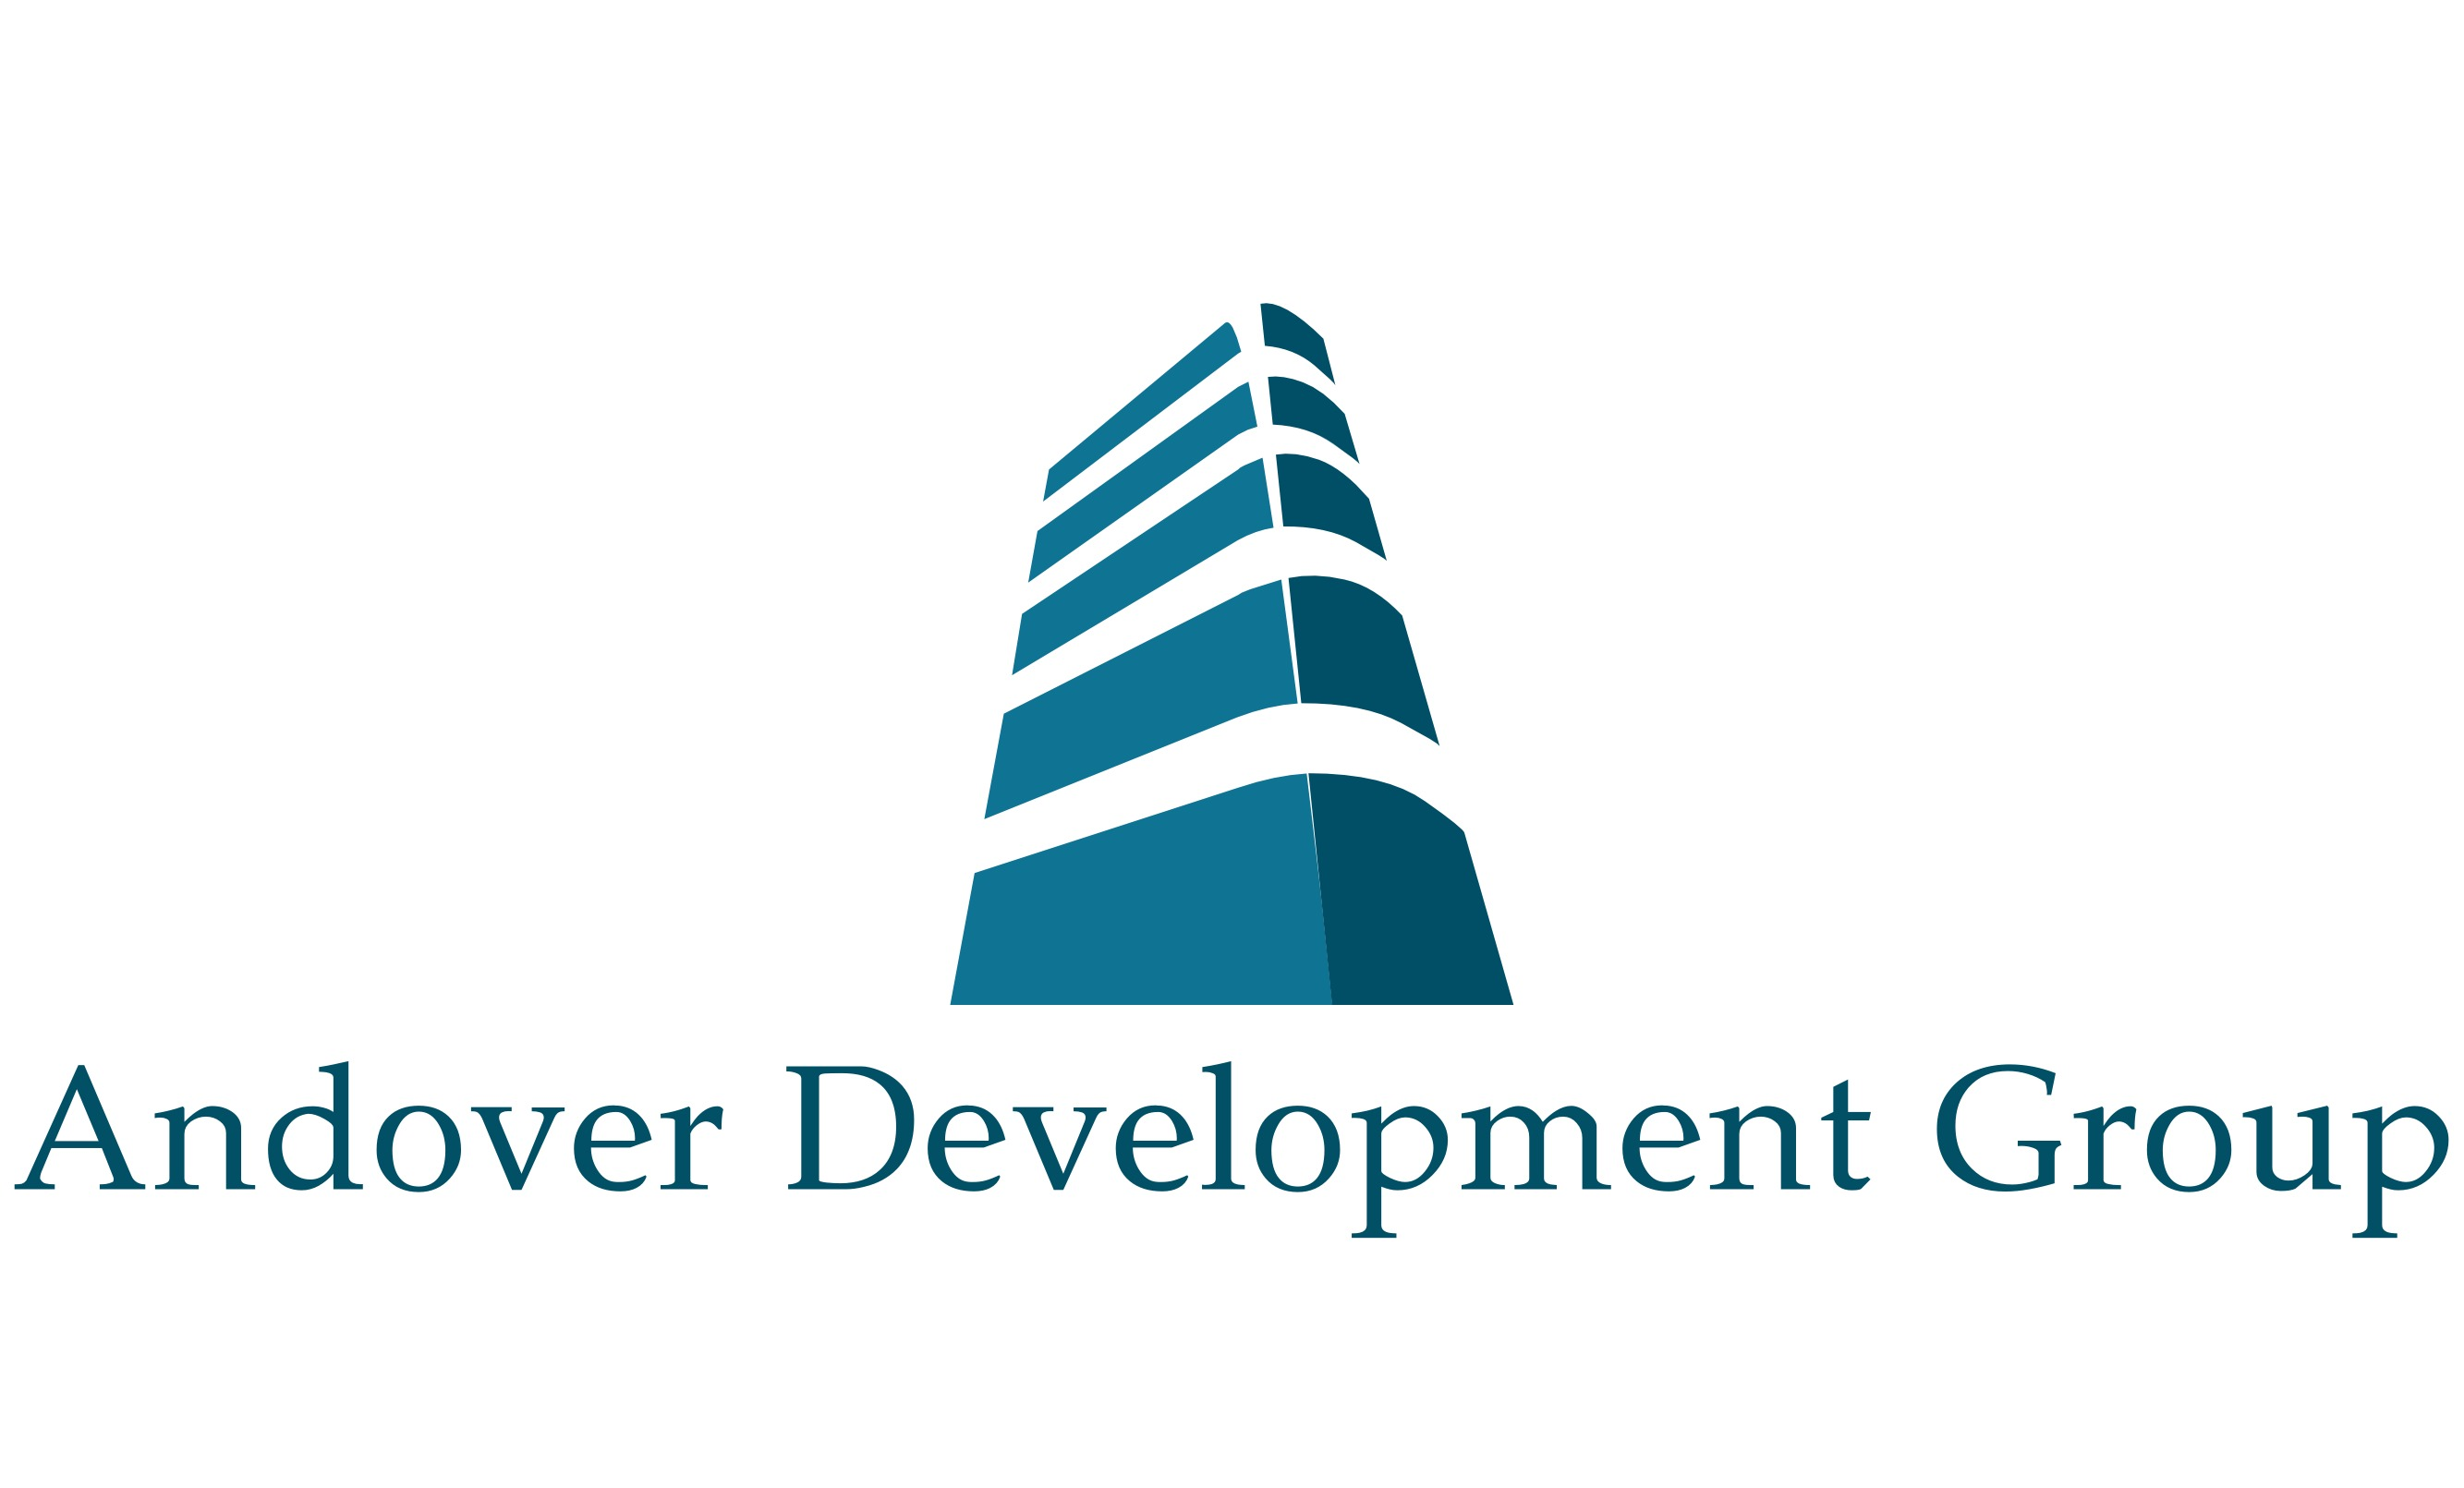 Andover Development Group